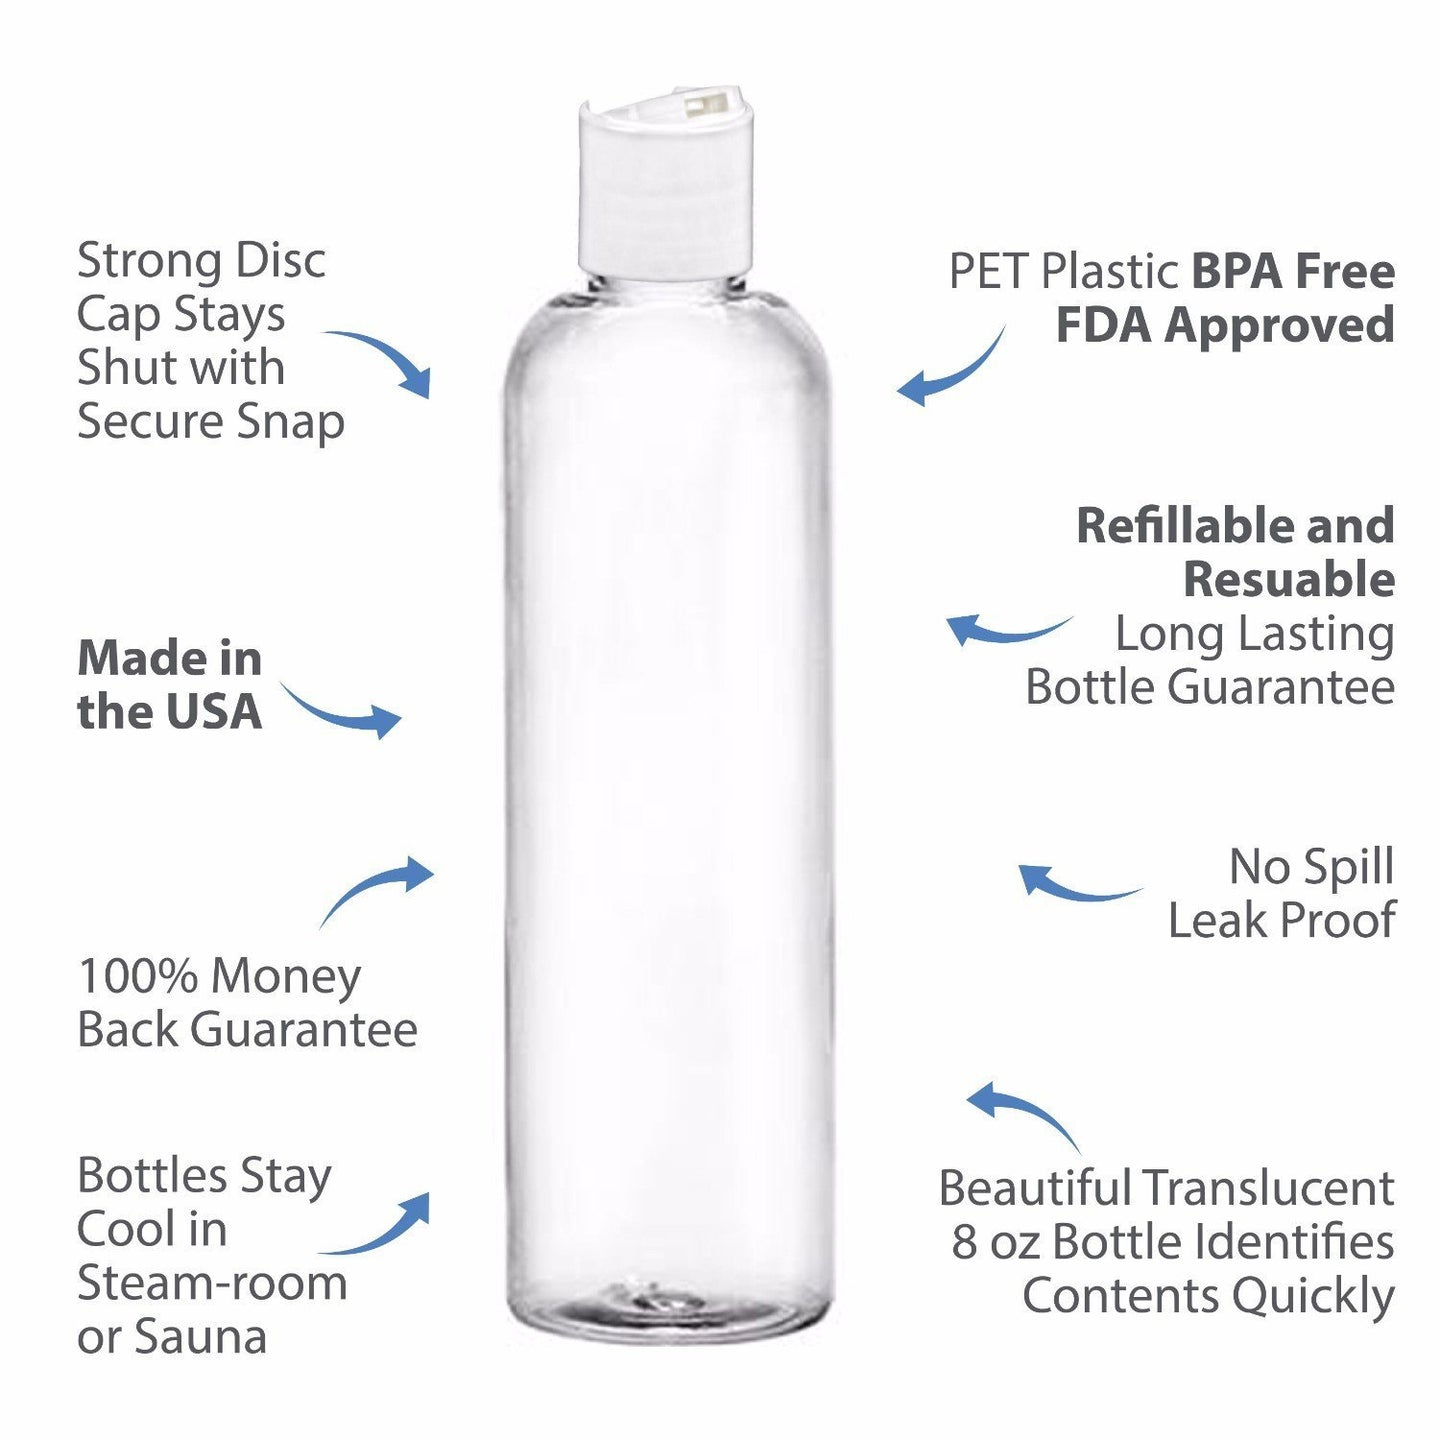 MoYo Natural Labs 8 oz Travel Bottles, Empty Travel Containers with Disc Caps, BPA Free PET Plastic Squeezable Toiletry/Cosmetic Bottles (Pack of 50, Clear)